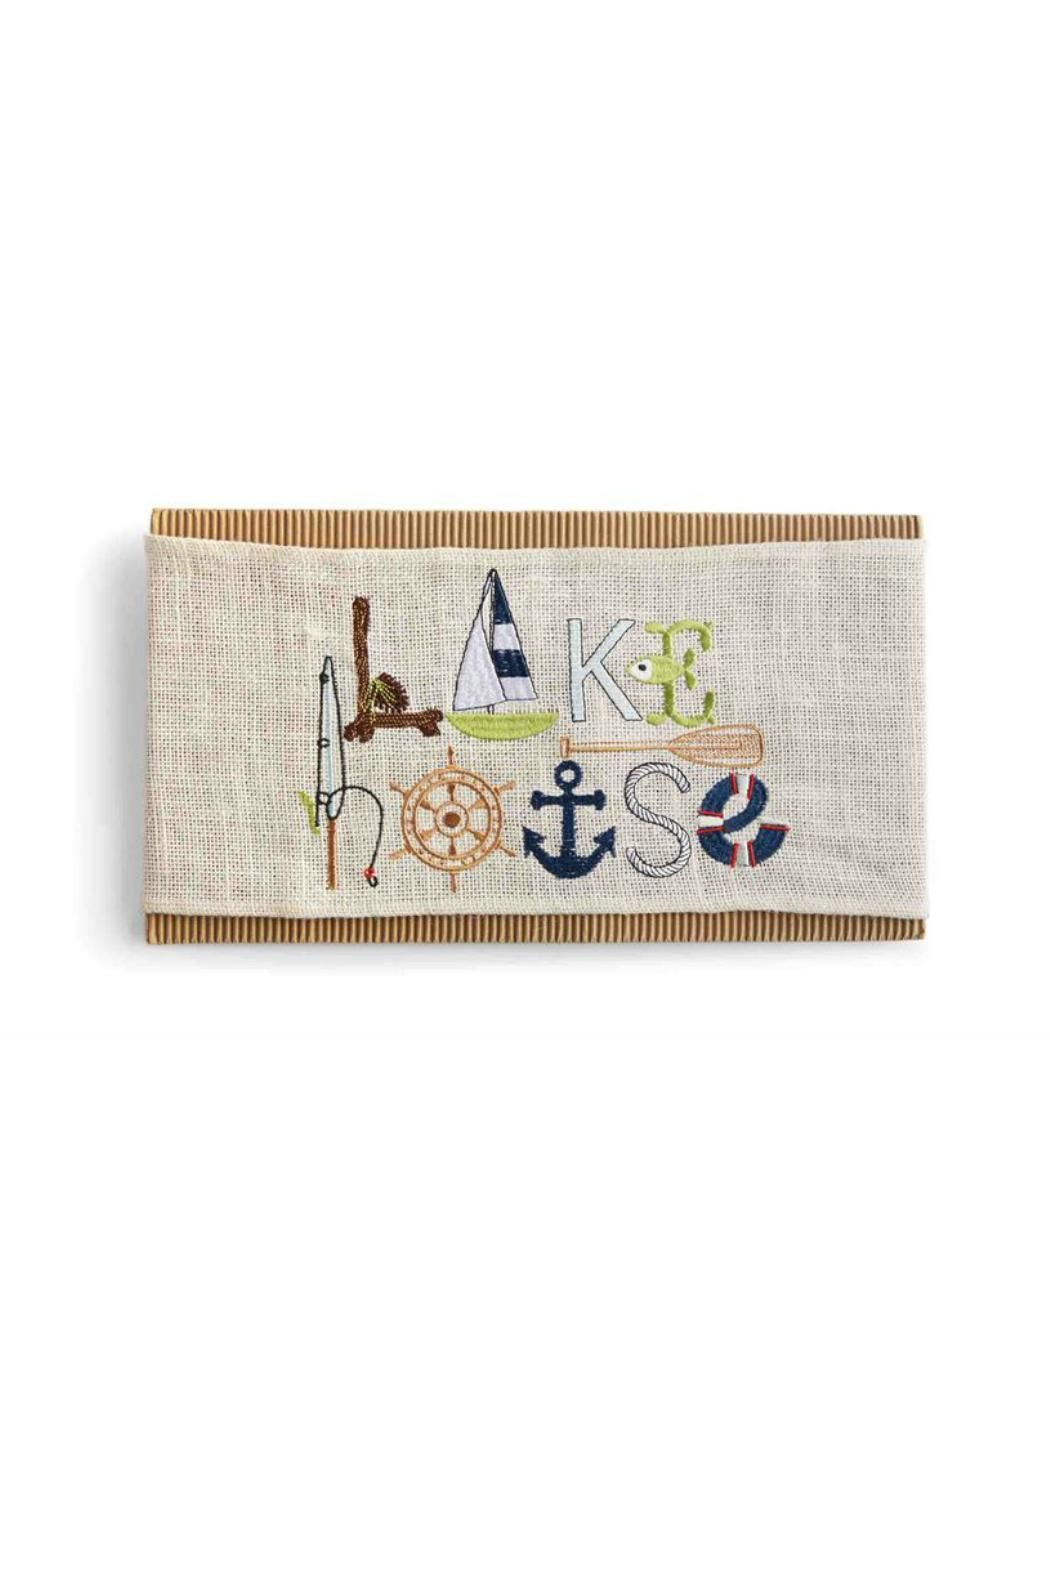 """Bleached burlap pillow wrap features embroidered """"Lake House"""" word art."""